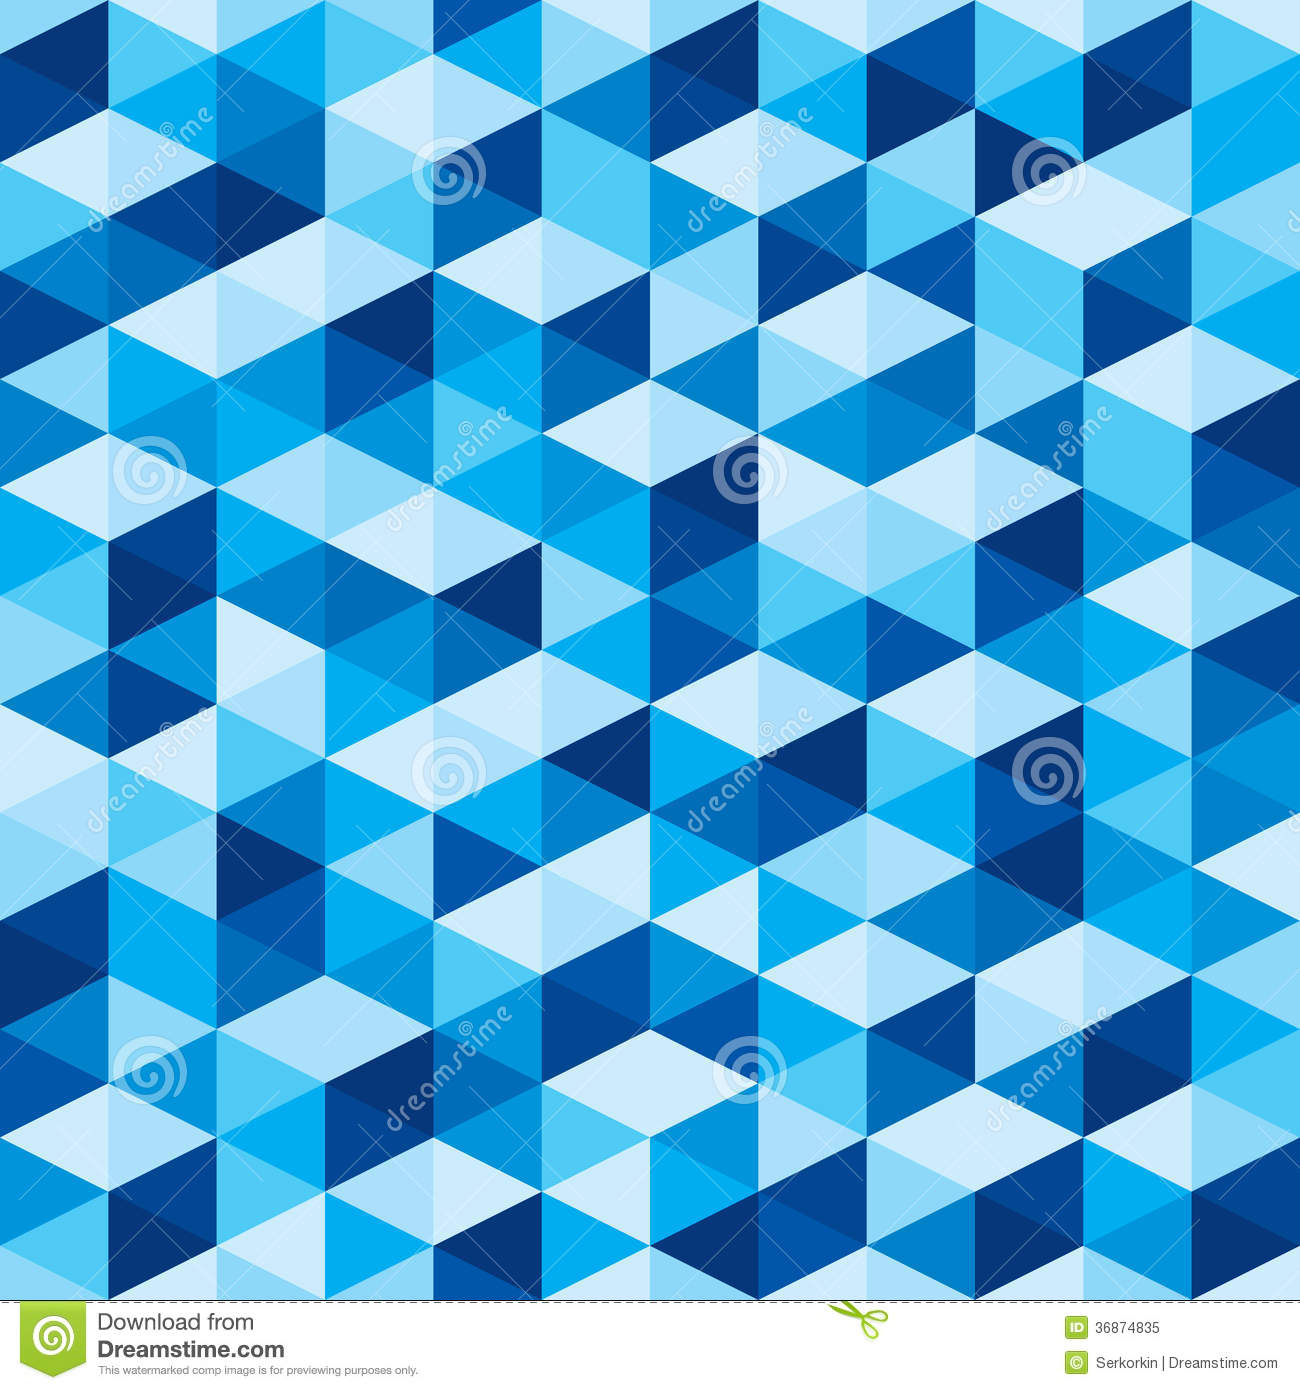 Abstract geometric background seamless blue pattern for Different wallpaper designs